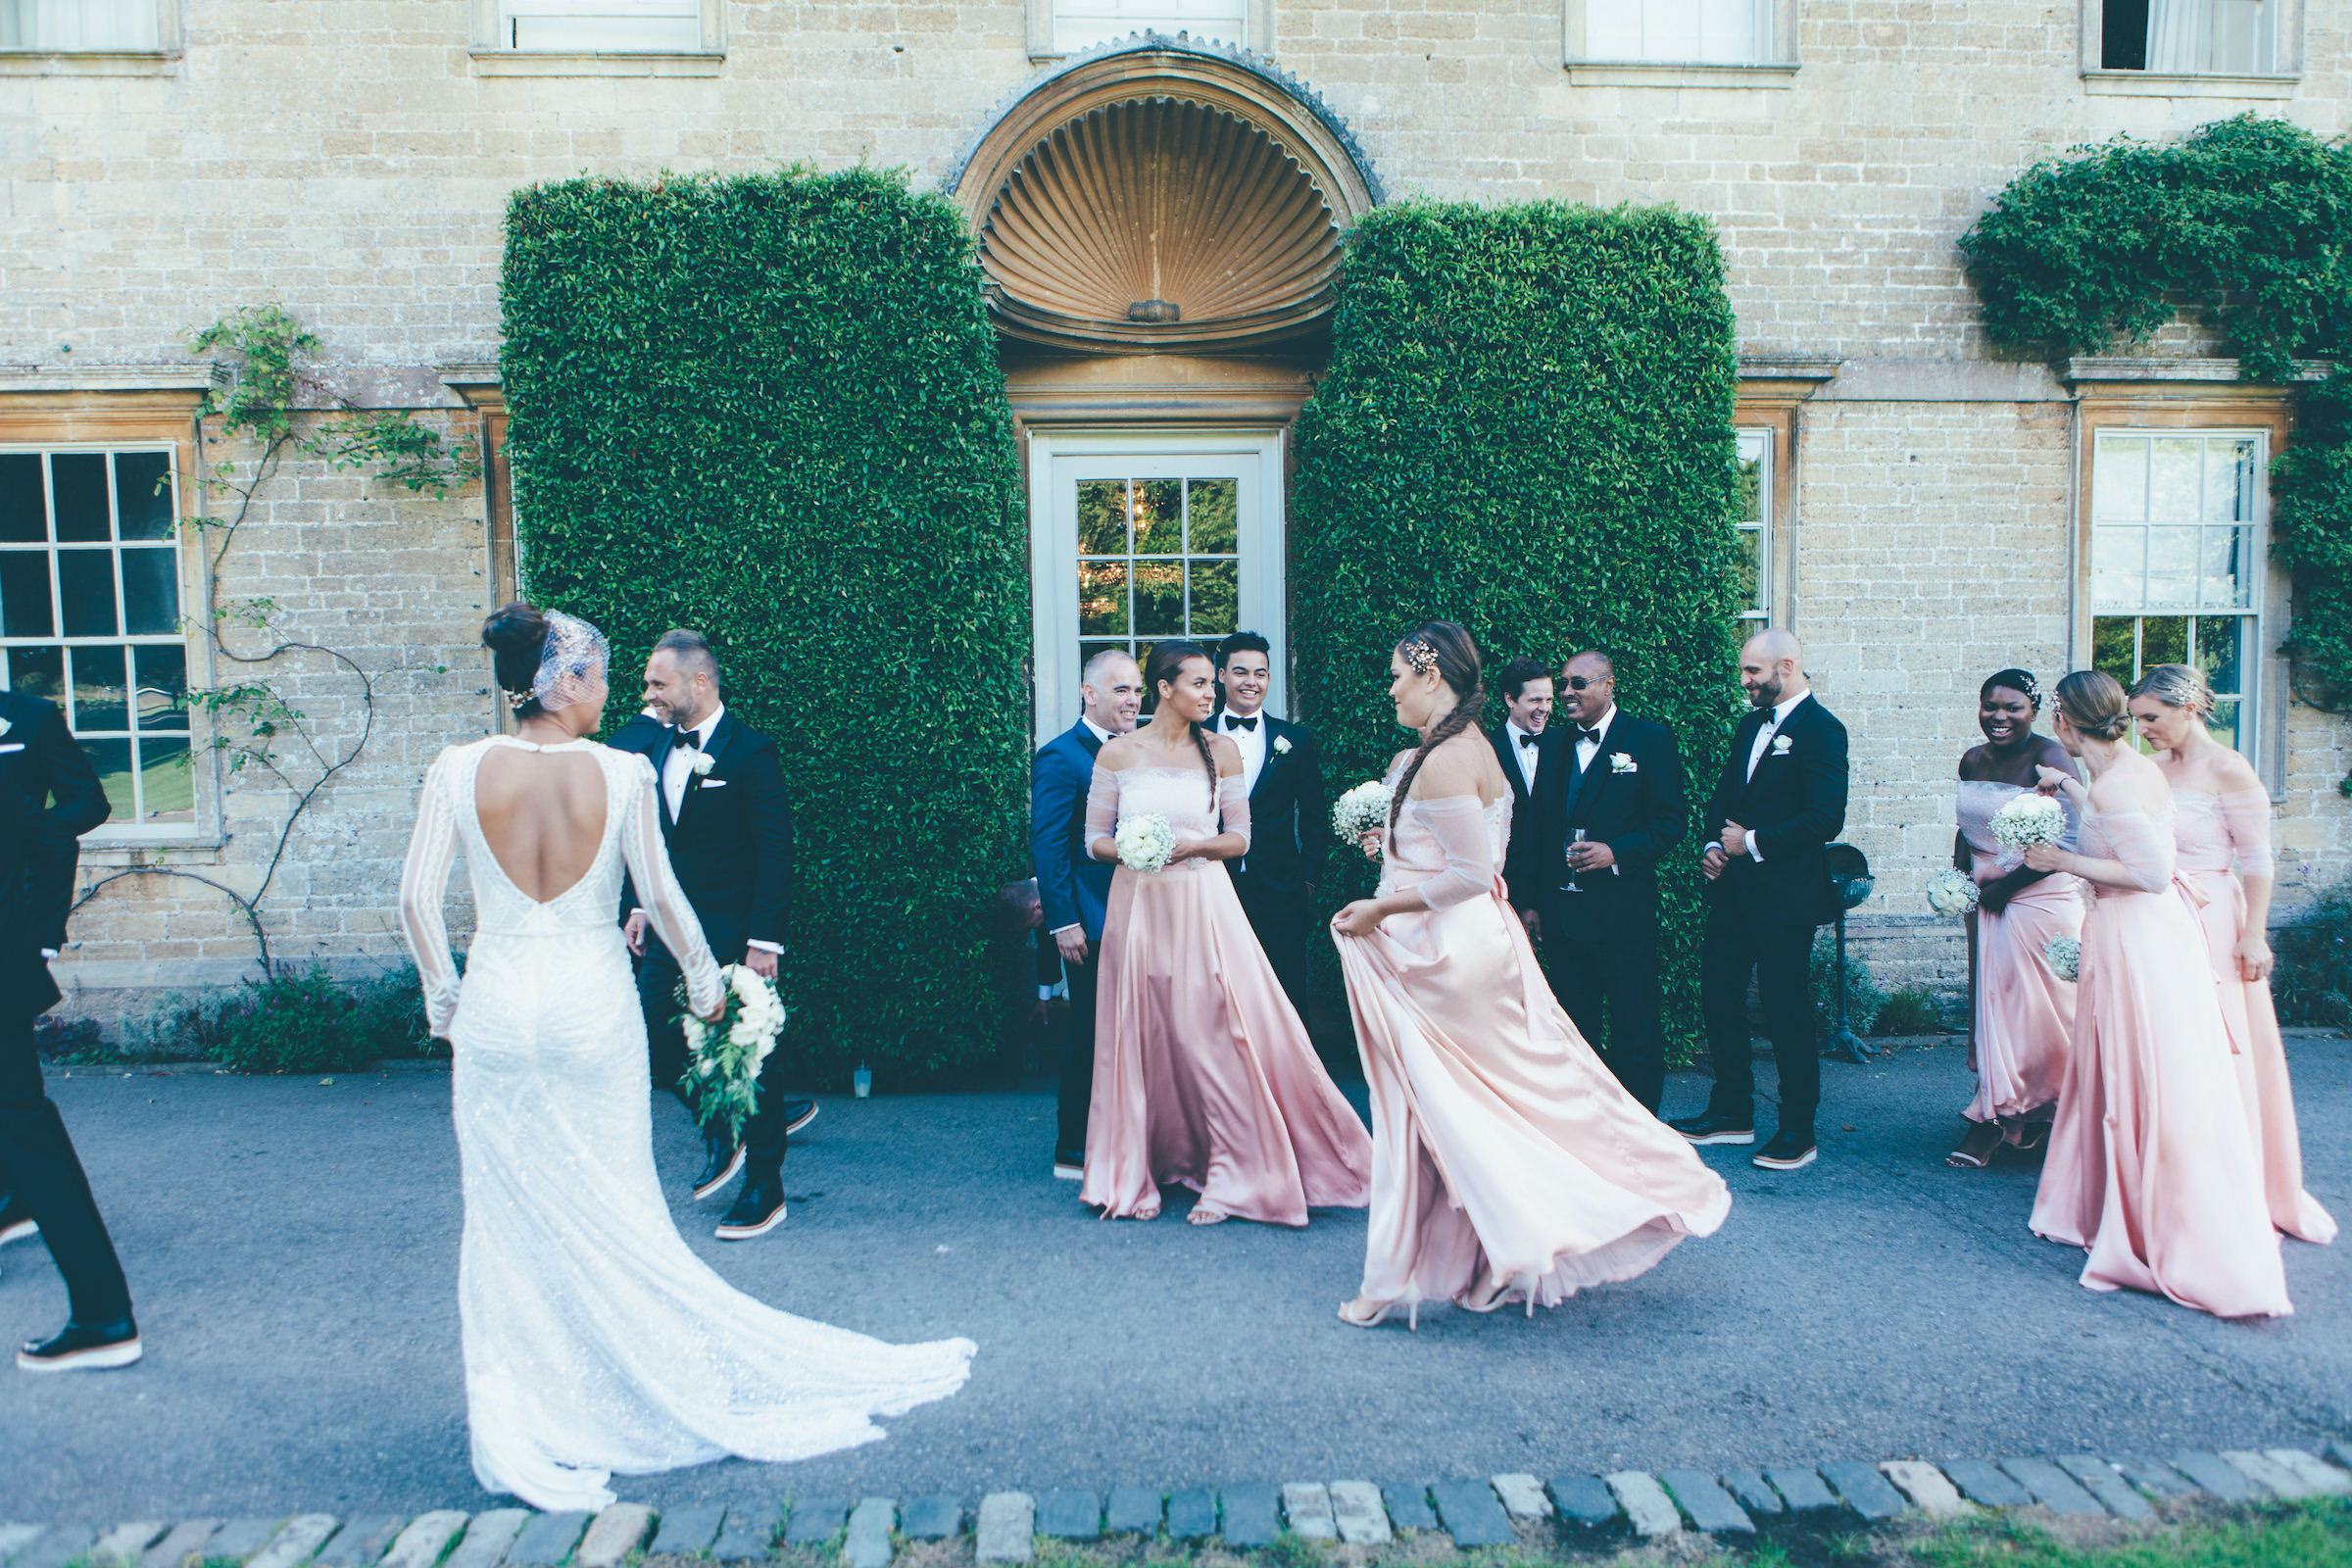 Somerset wedding photography at a Babington House wedding by September Pictures, London and Los Angeles